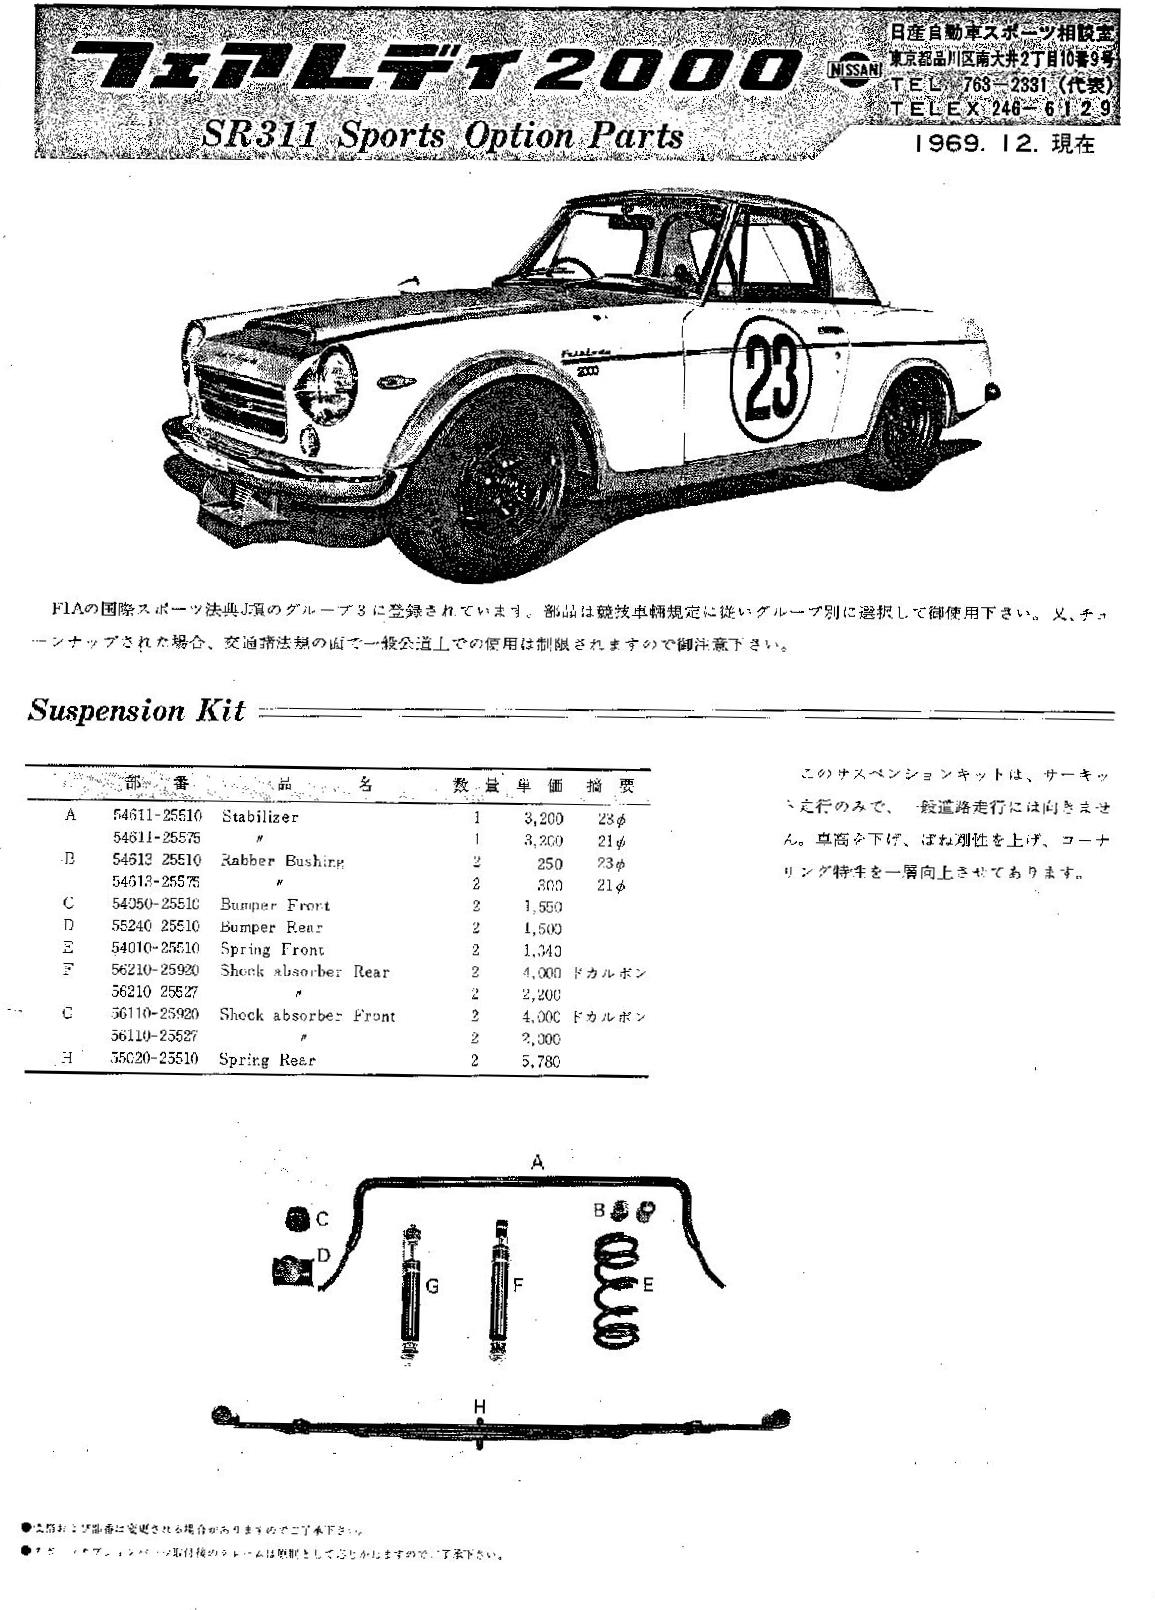 SR311 Fairlady Roadster racing parts catalog from 1969!